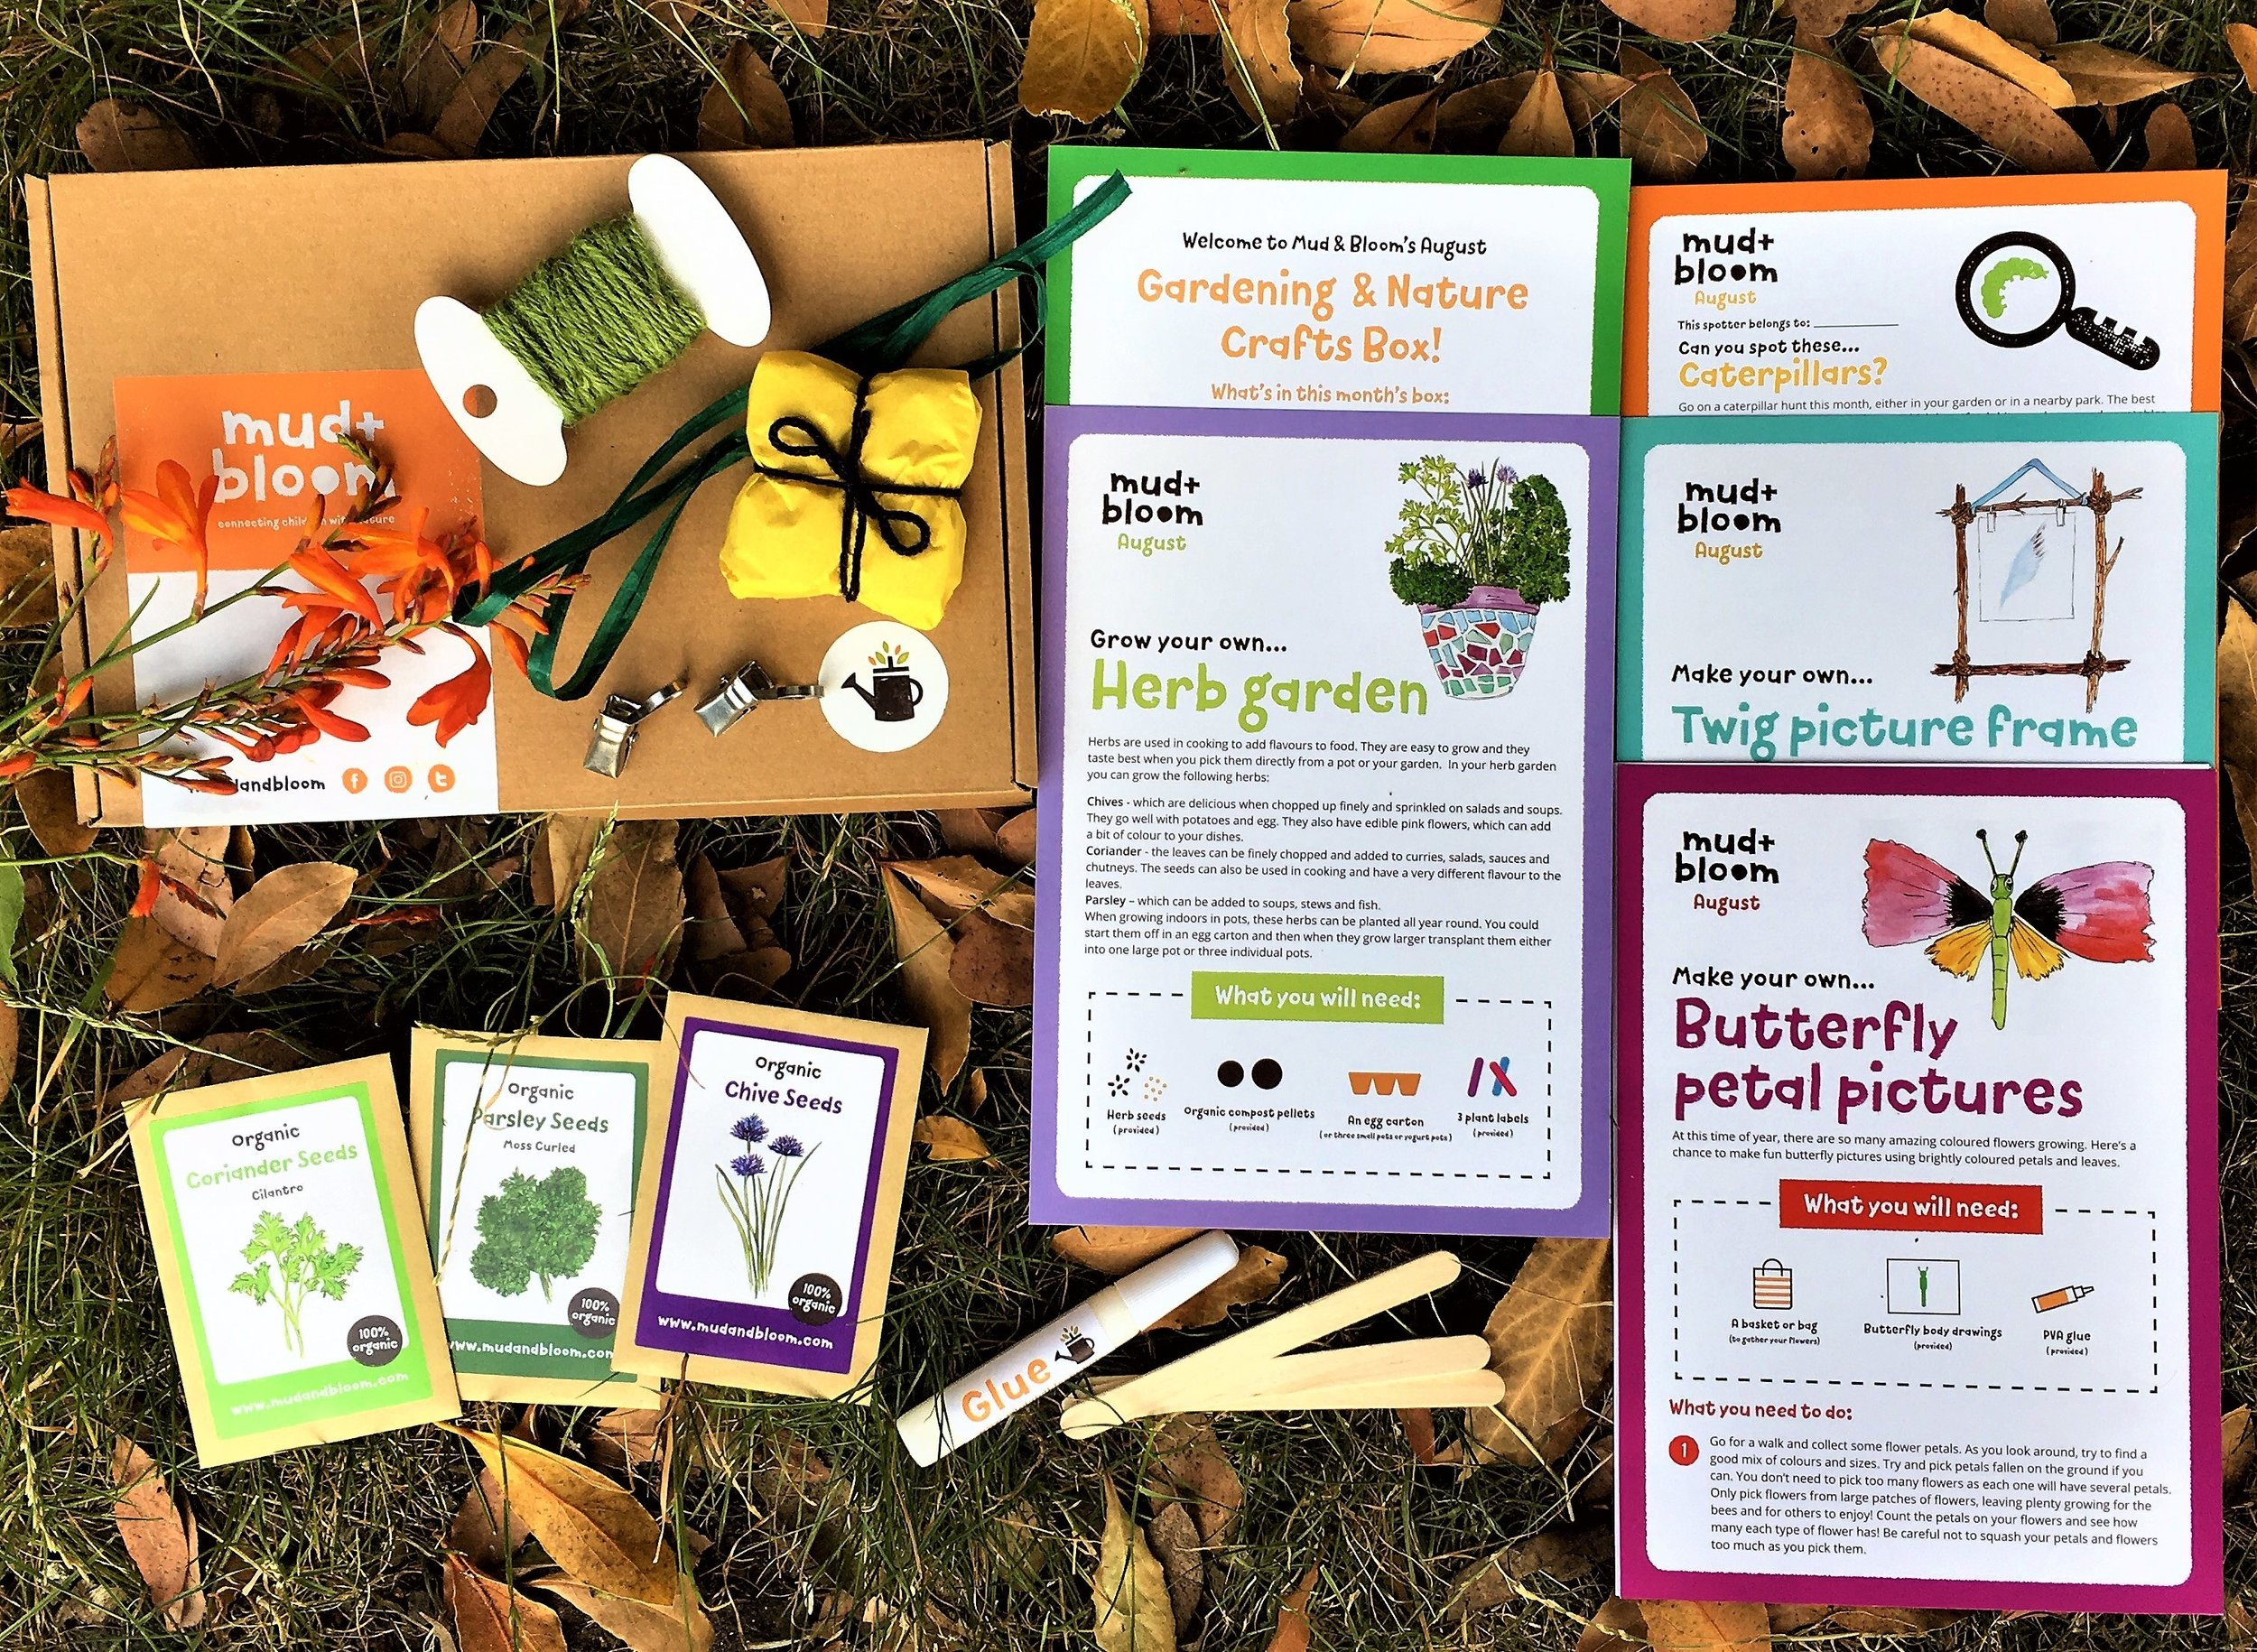 August's Mud & Bloom box - To buy August's box as a one of purchase for £7.95 click here